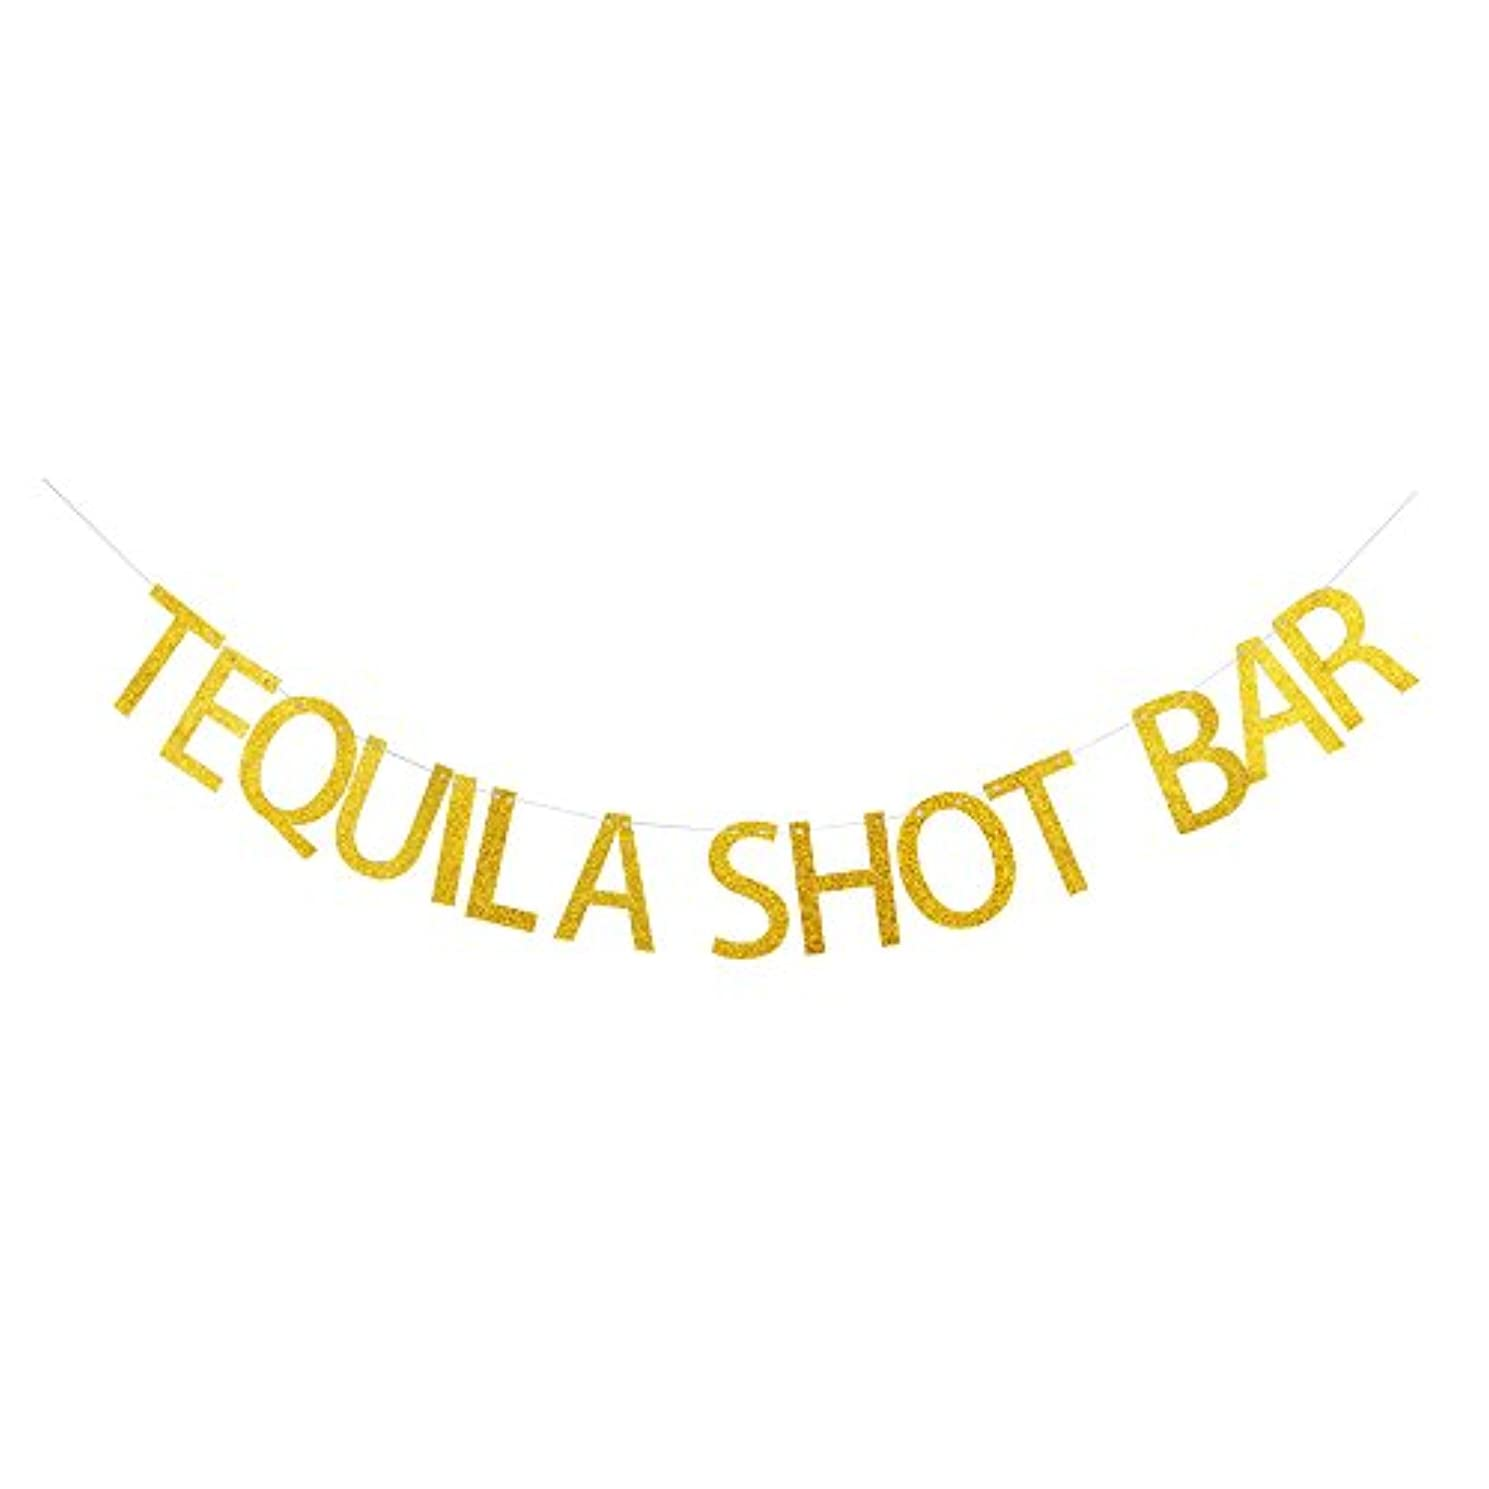 Tequila Shot Bar Banner, Gold Gliter Paper Sign Decors for Birthday/Wedding/Engagement/Drink/Mexican Party